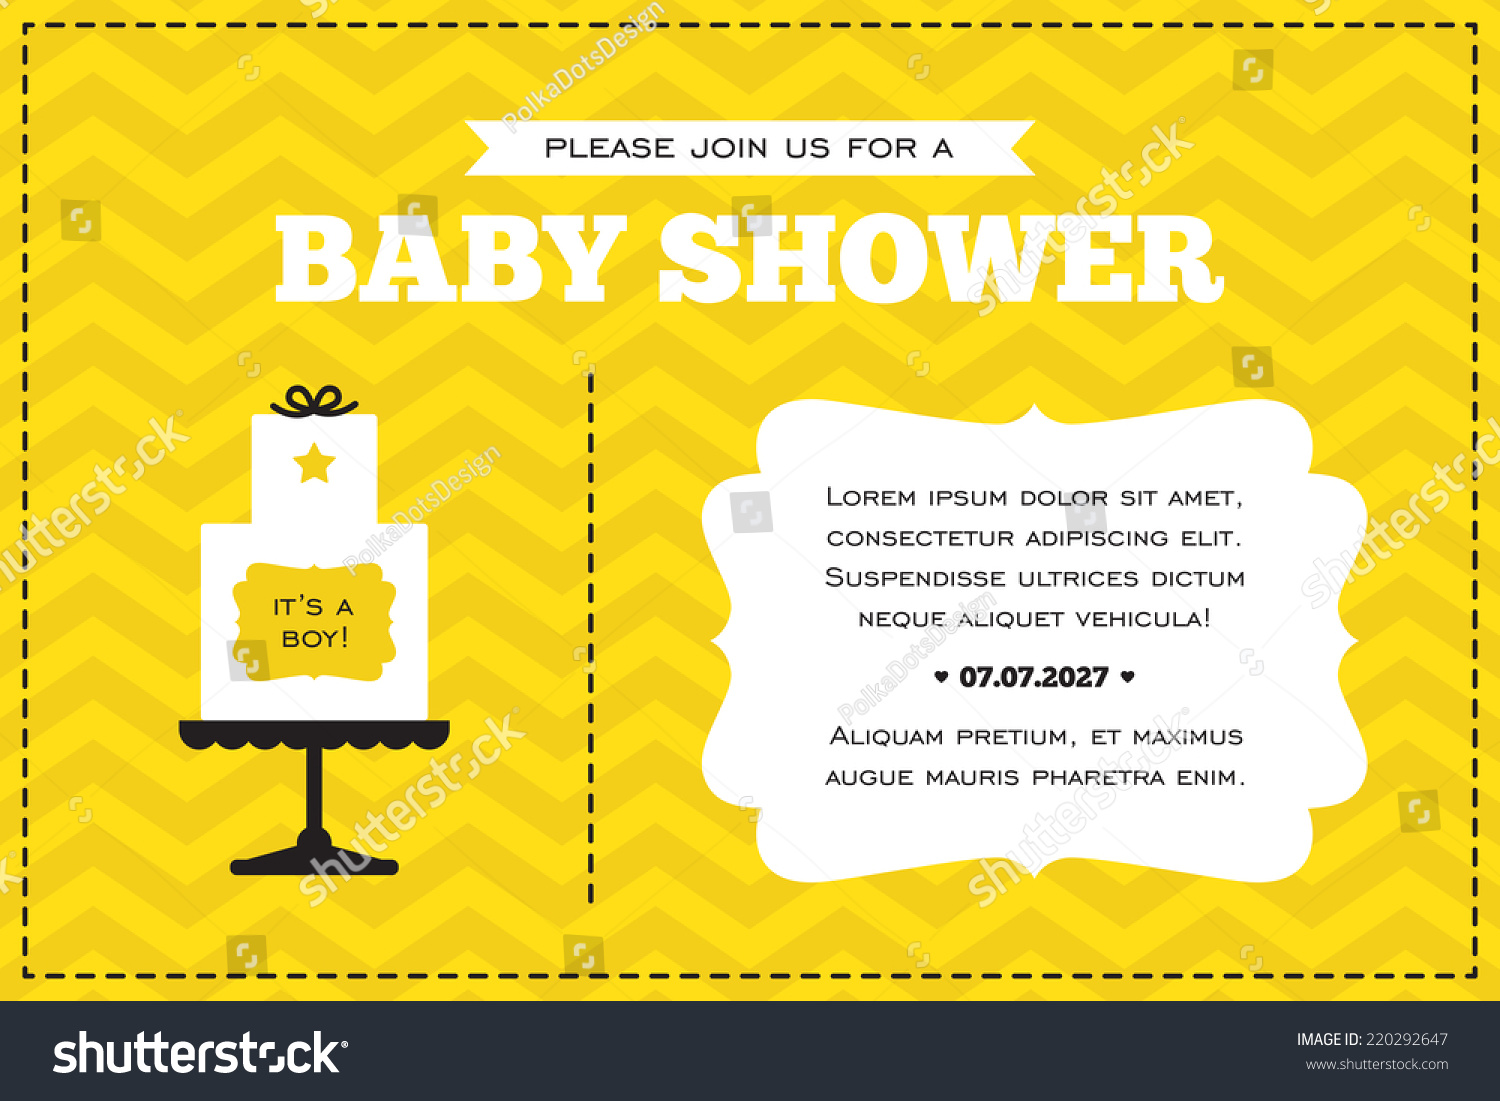 Baby Shower Invitation White Yellow Black Stock Vector 220292647 ...